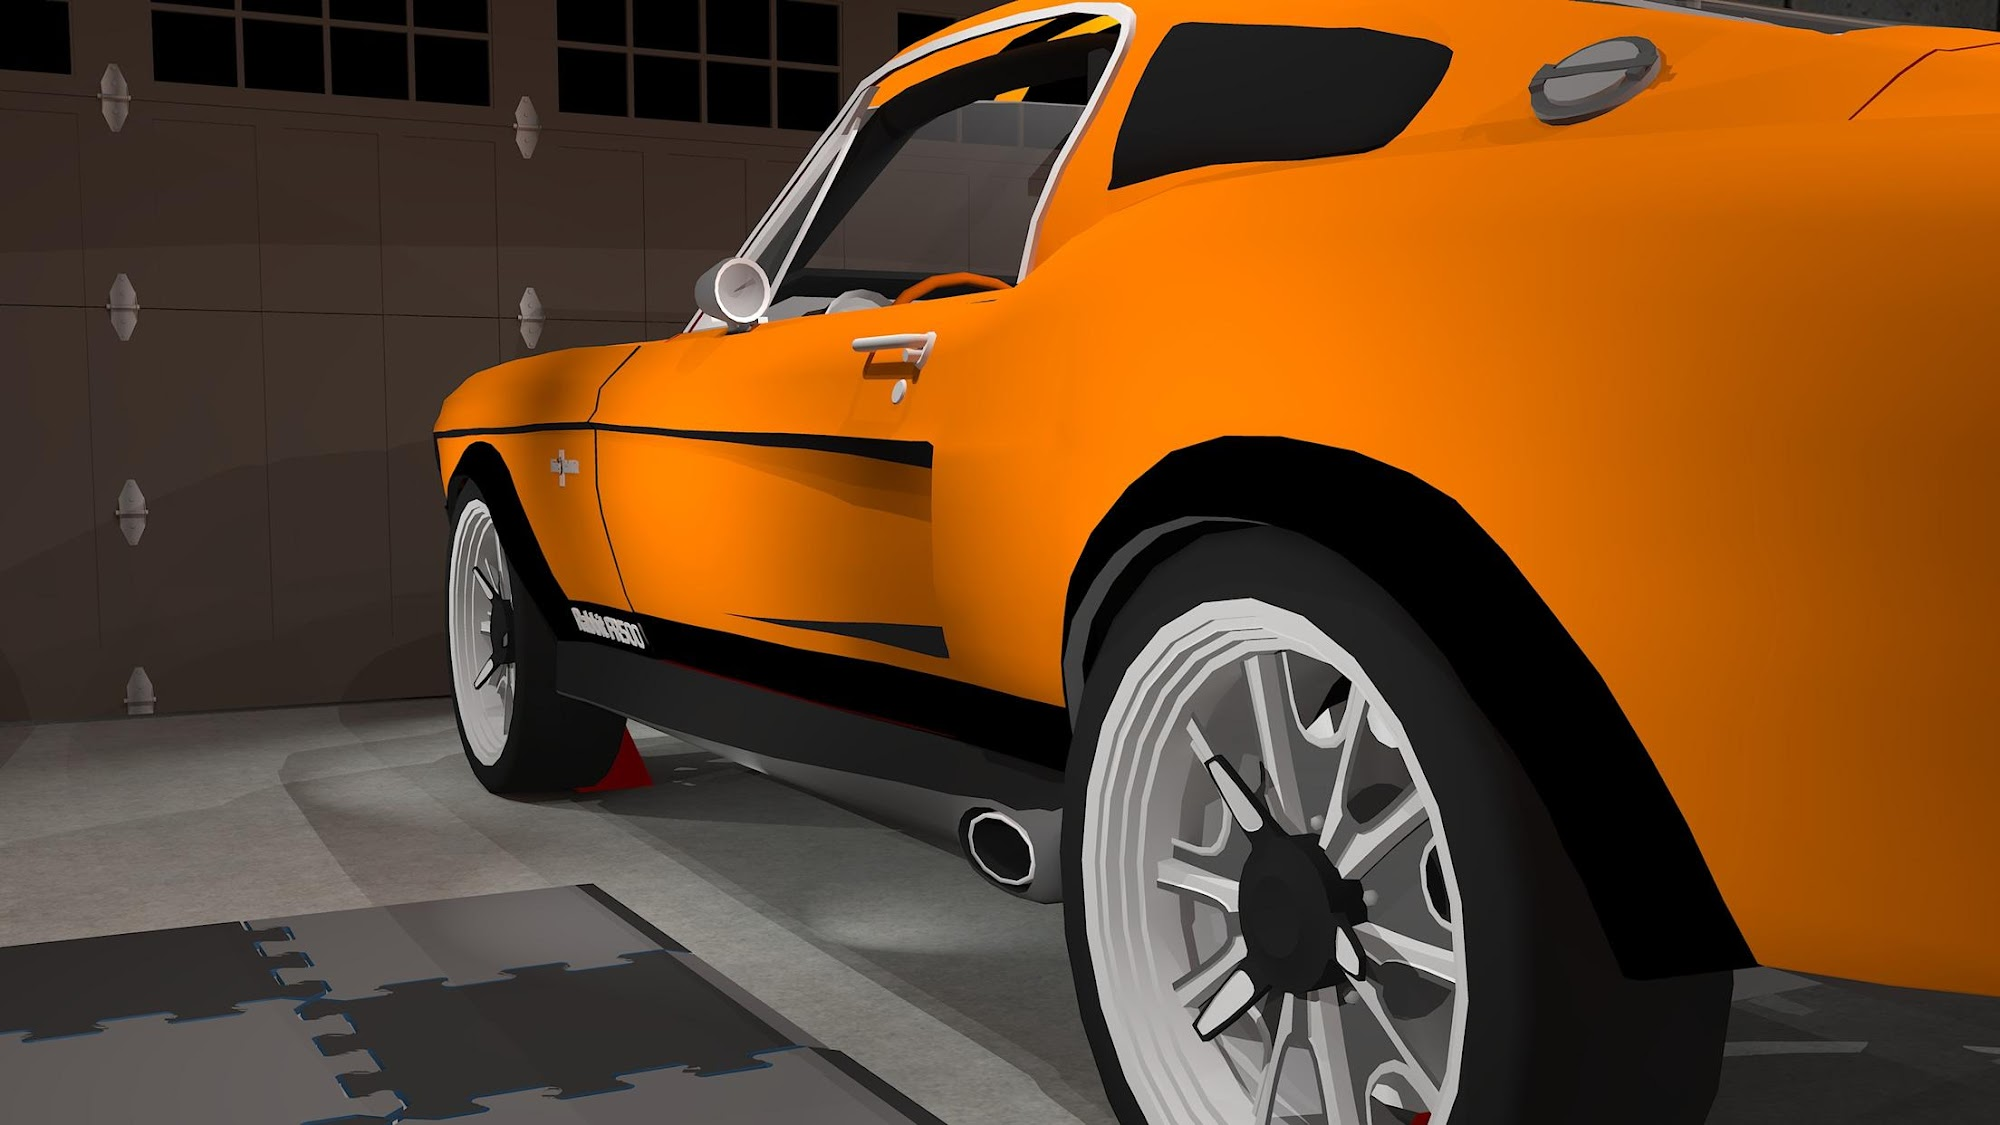 Fix My Car >> Fix My Car Classic Muscle Car Android Reviews At Android